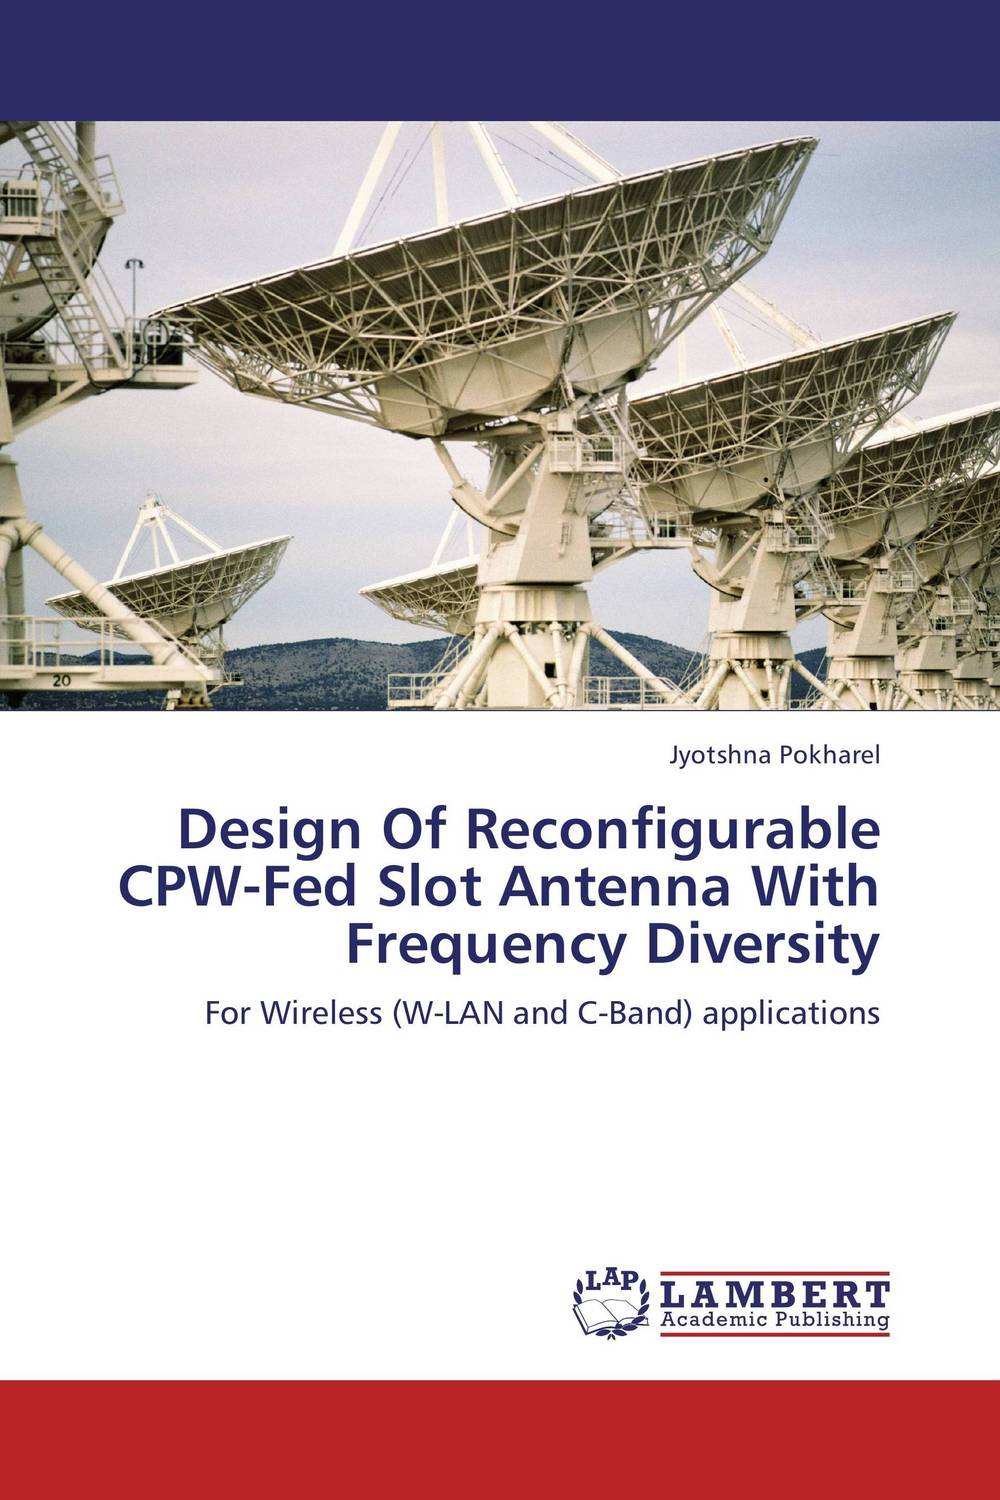 Design Of Reconfigurable CPW-Fed Slot Antenna With Frequency Diversity 010 046 electric guitar strings nickel alloy orphee rx 17